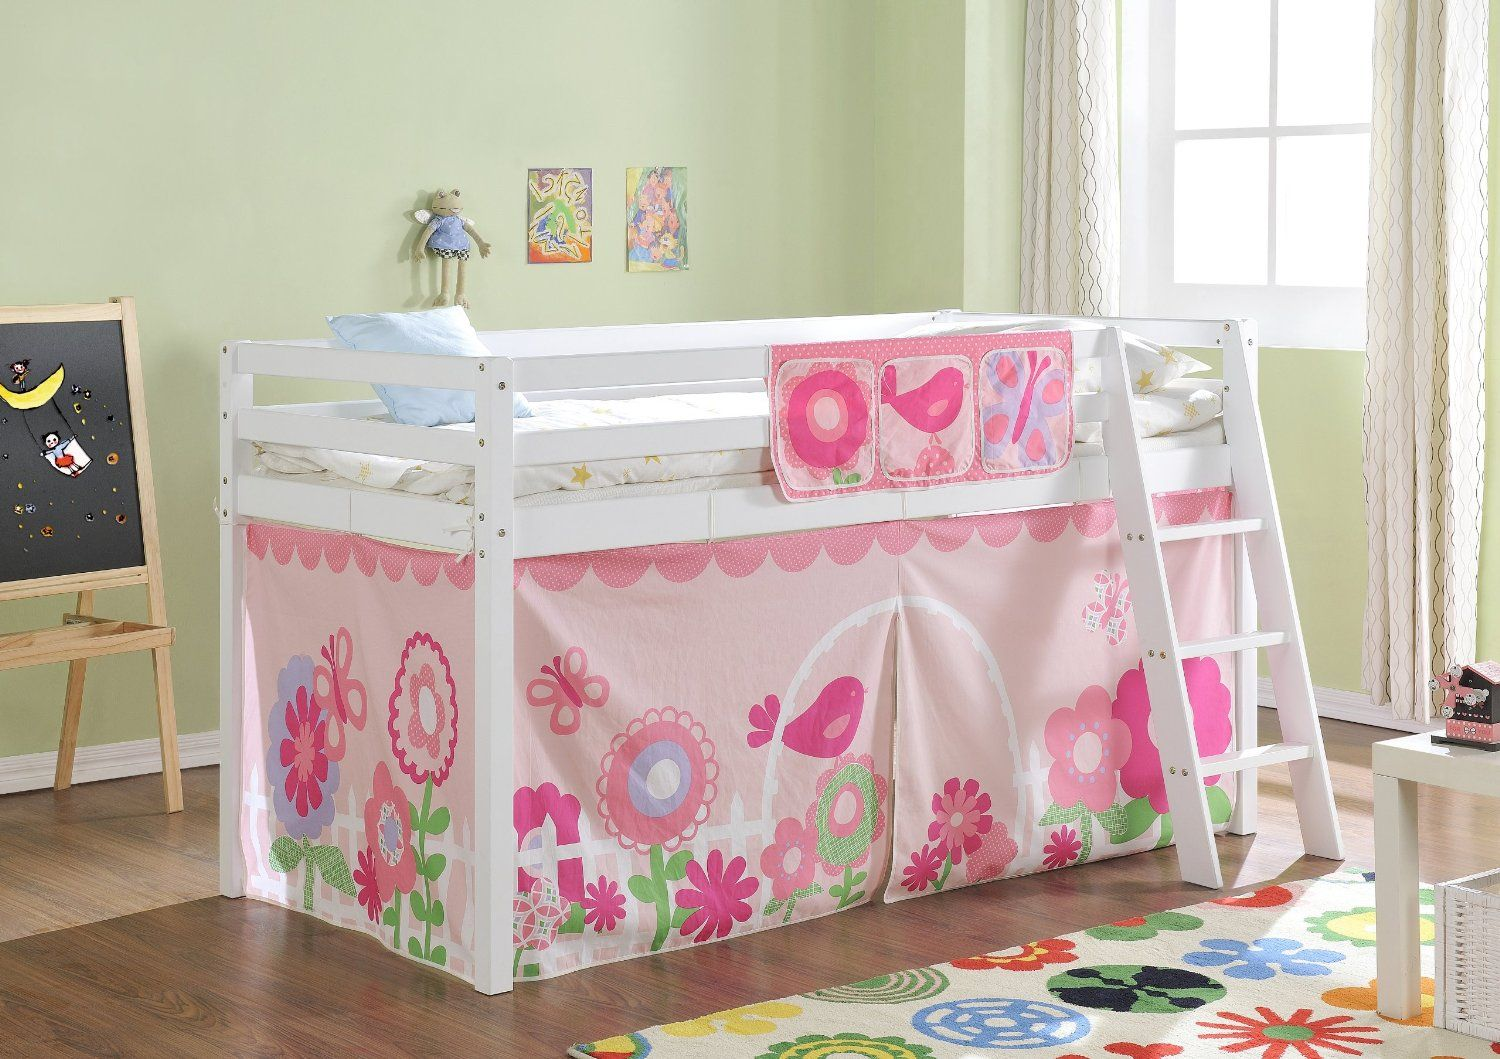 Cabin Bed Mid Sleeper in White with Tent FLORAL 578WG FLORAL Amazon.co. & Cabin Bed Mid Sleeper in White with Tent FLORAL 578WG FLORAL ...